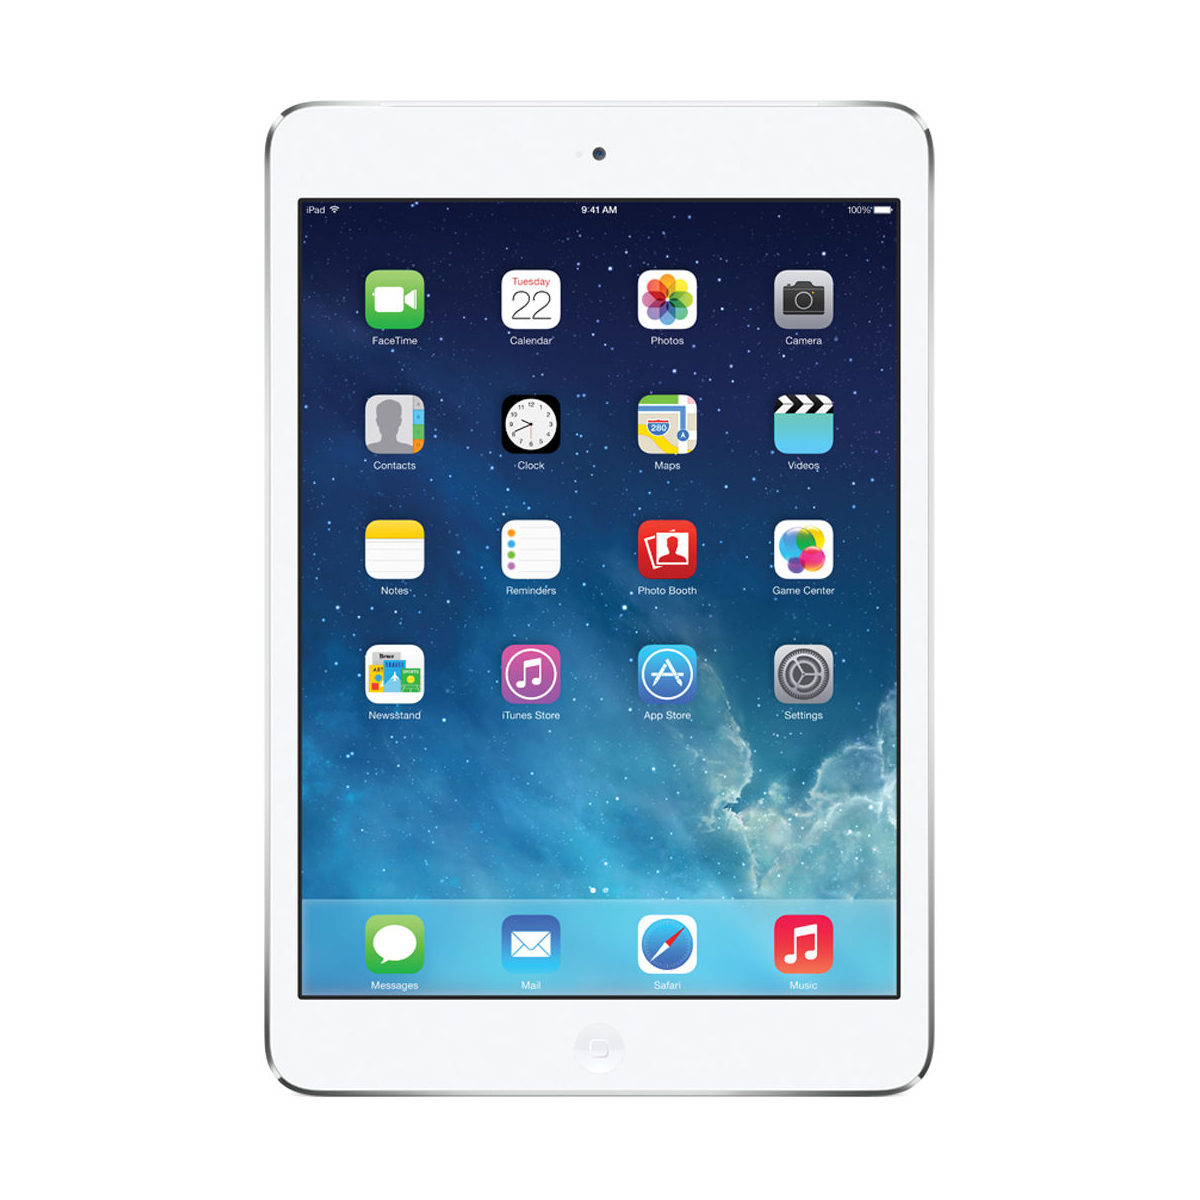 "Refurbished Apple iPad Mini 2 7.9"" Retina Display 16GB WiFi Tablet, White Silver - ME279LL/A"